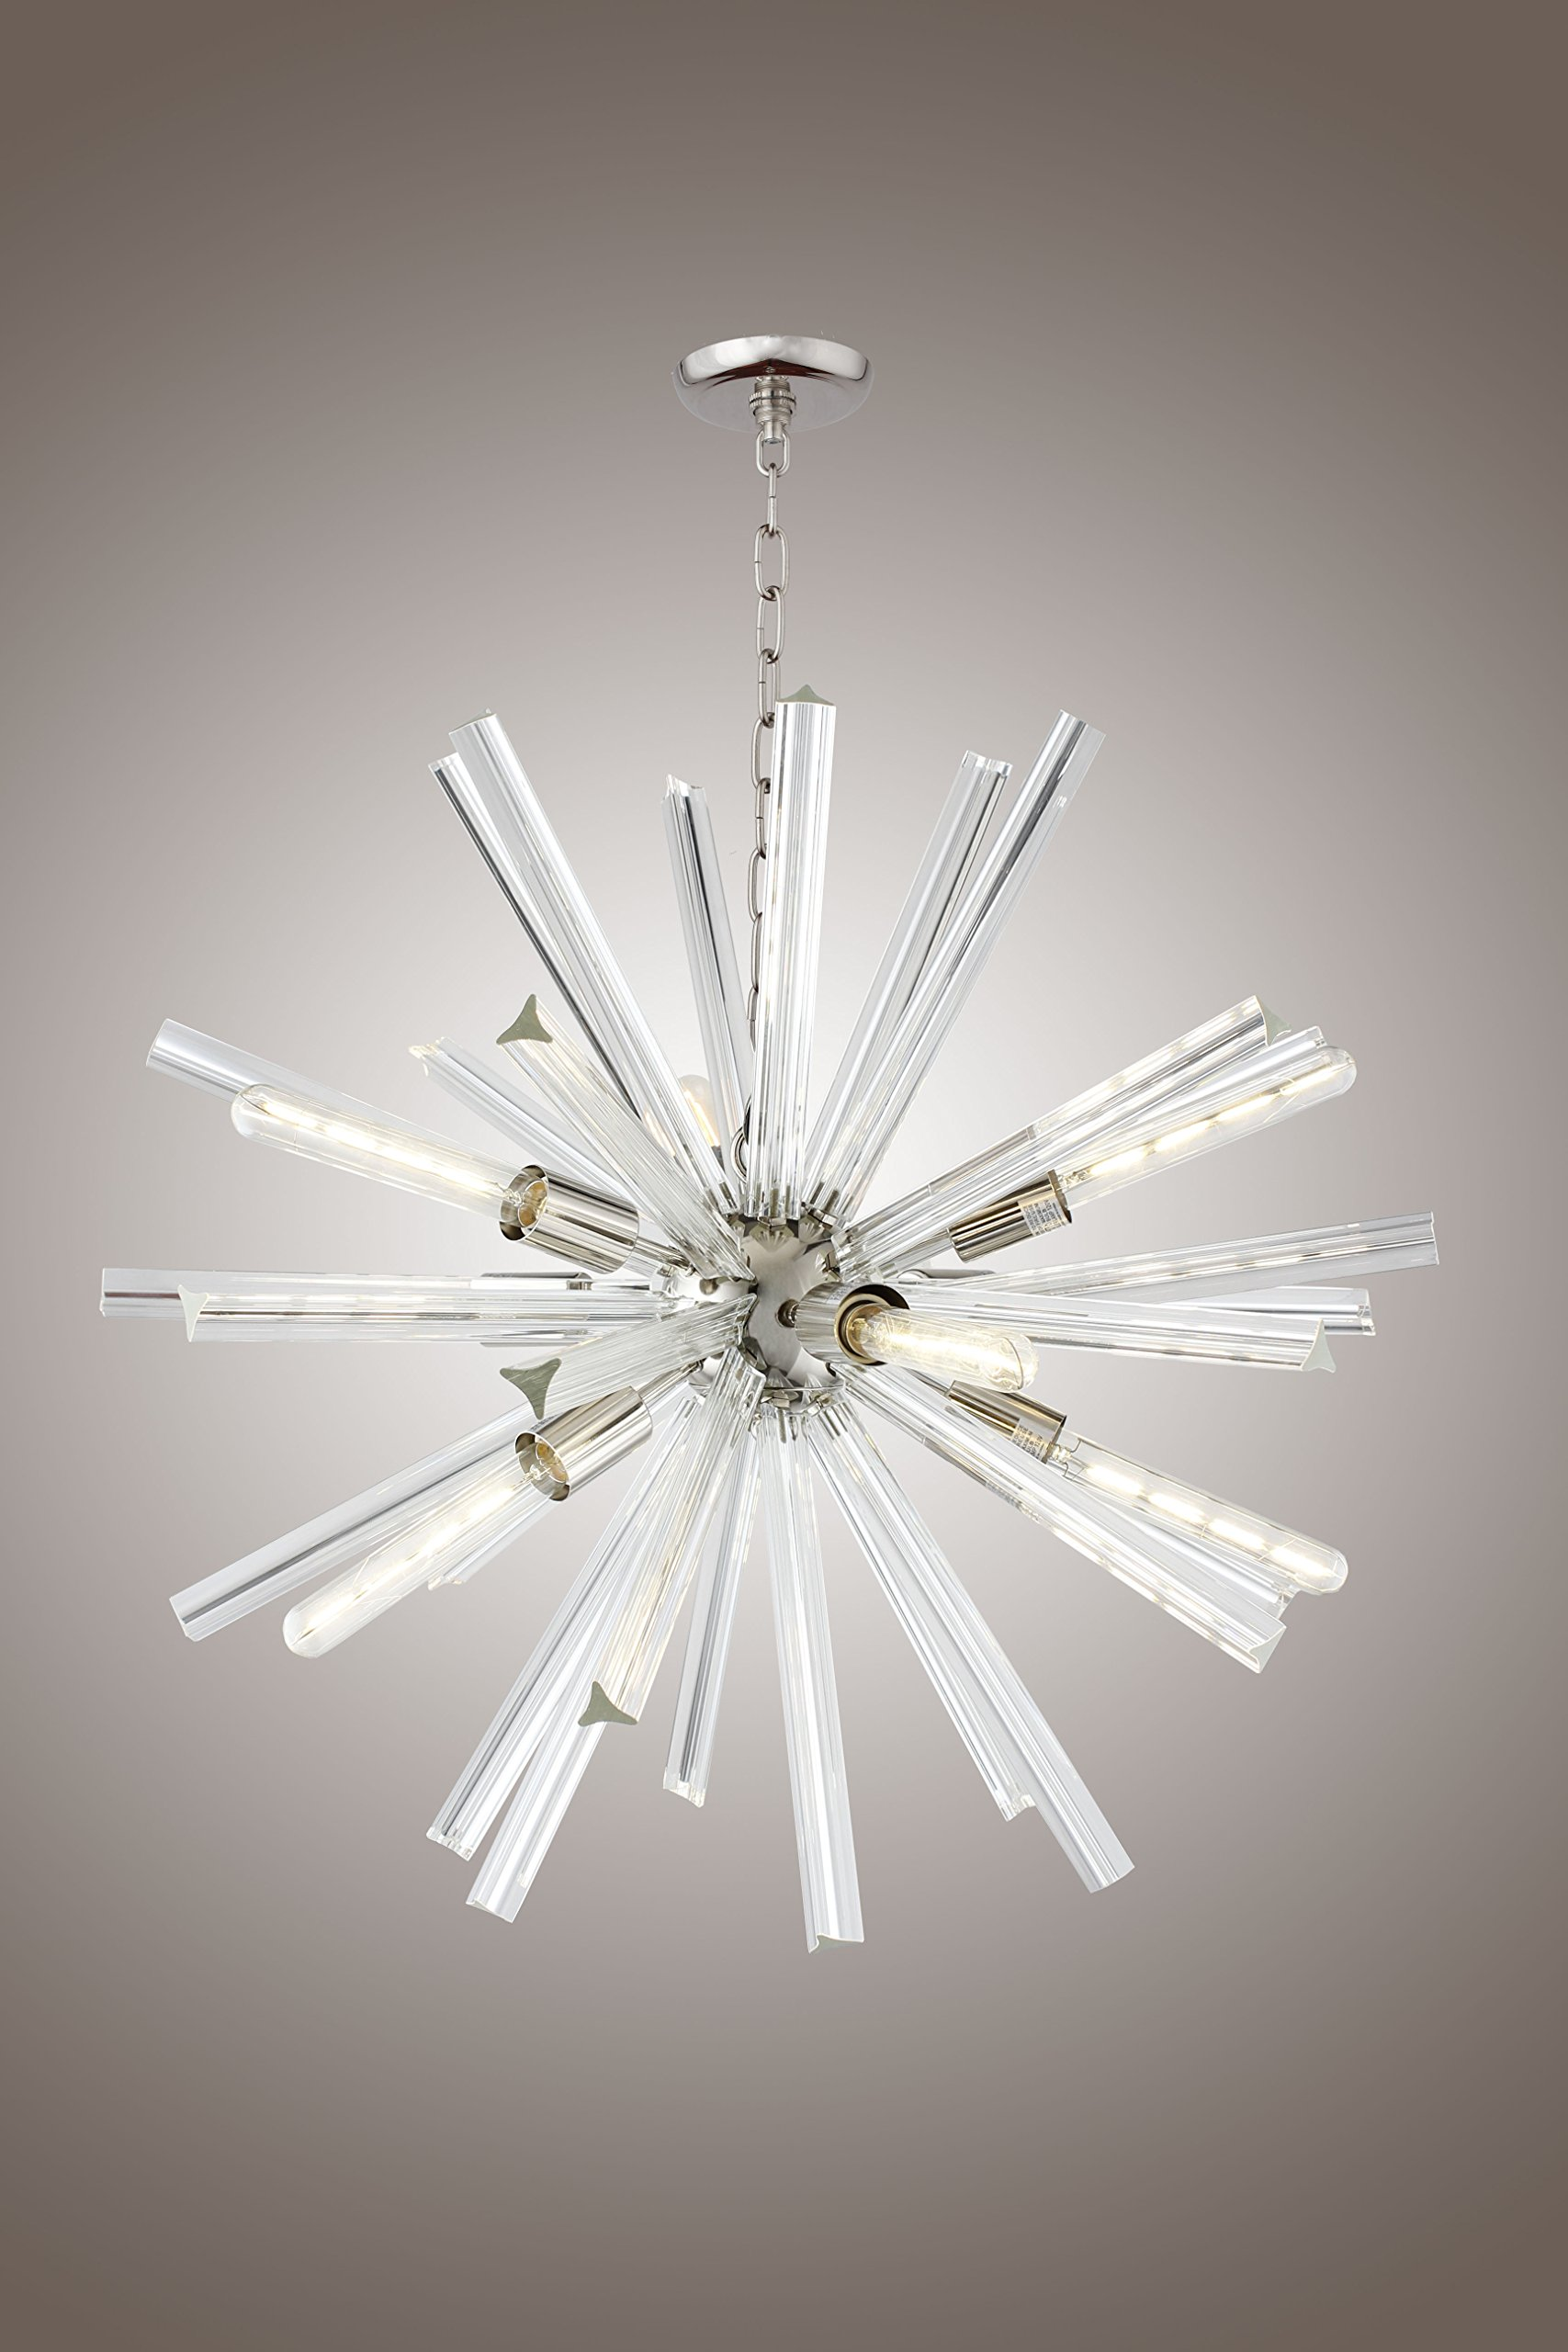 29 Inch Clear Crystal Axis Luxury Chandelier Lucite Sputnik Hanley 9 Light Ceiling Lamp by Deluxe Lamp (Image #1)